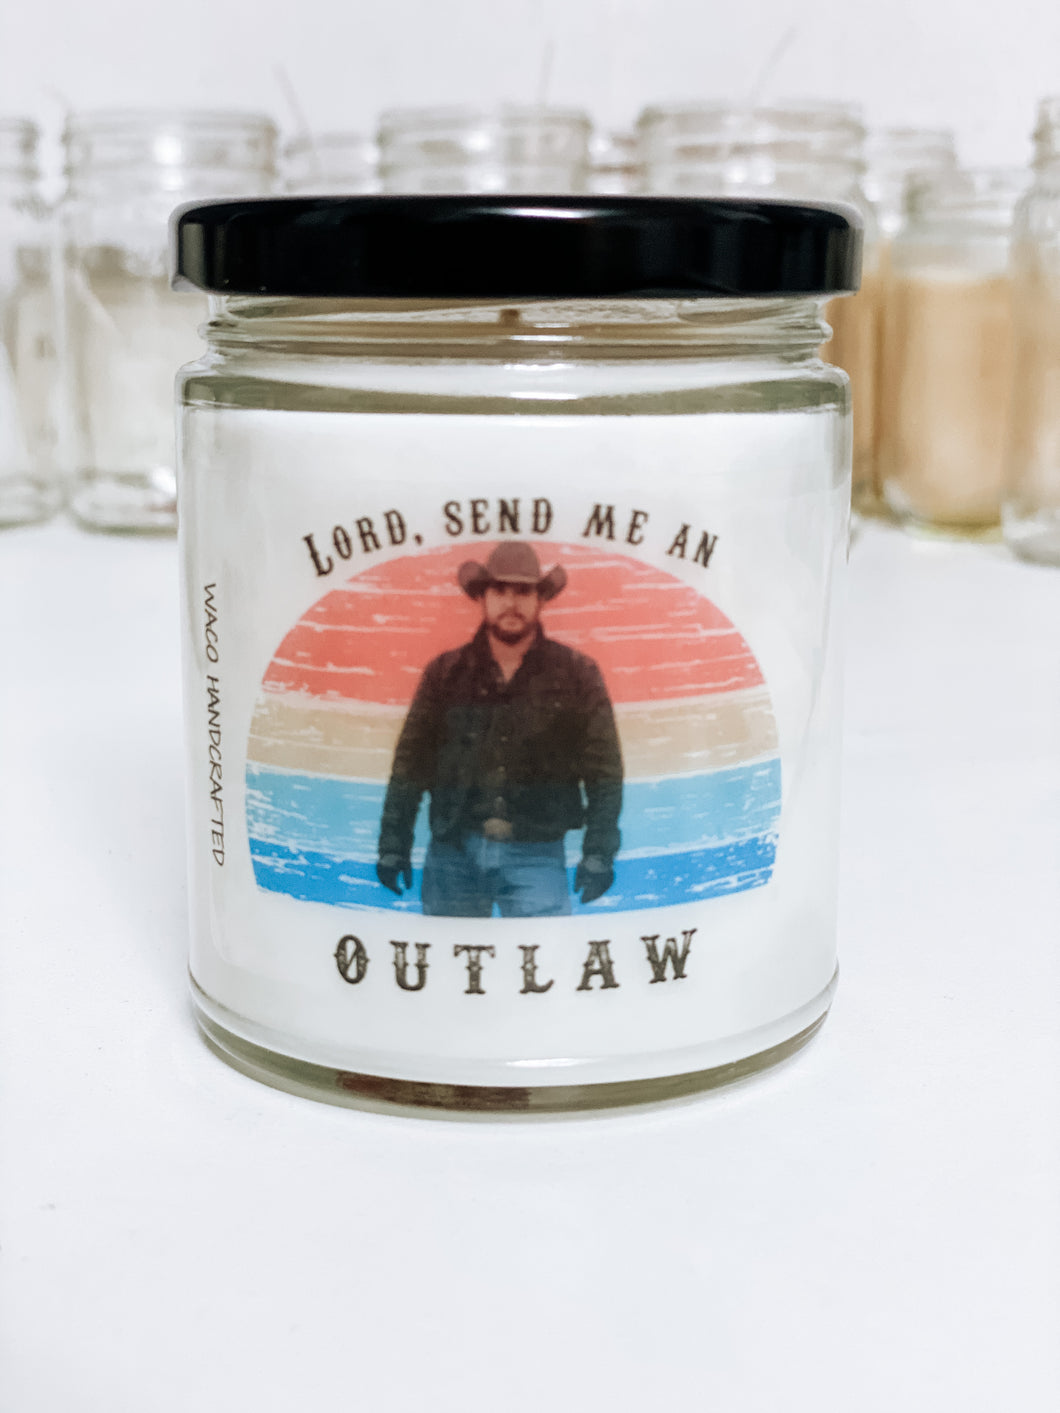 Yellowstone Send Me an Outlaw Scented Candle | 9 oz or 16 oz |